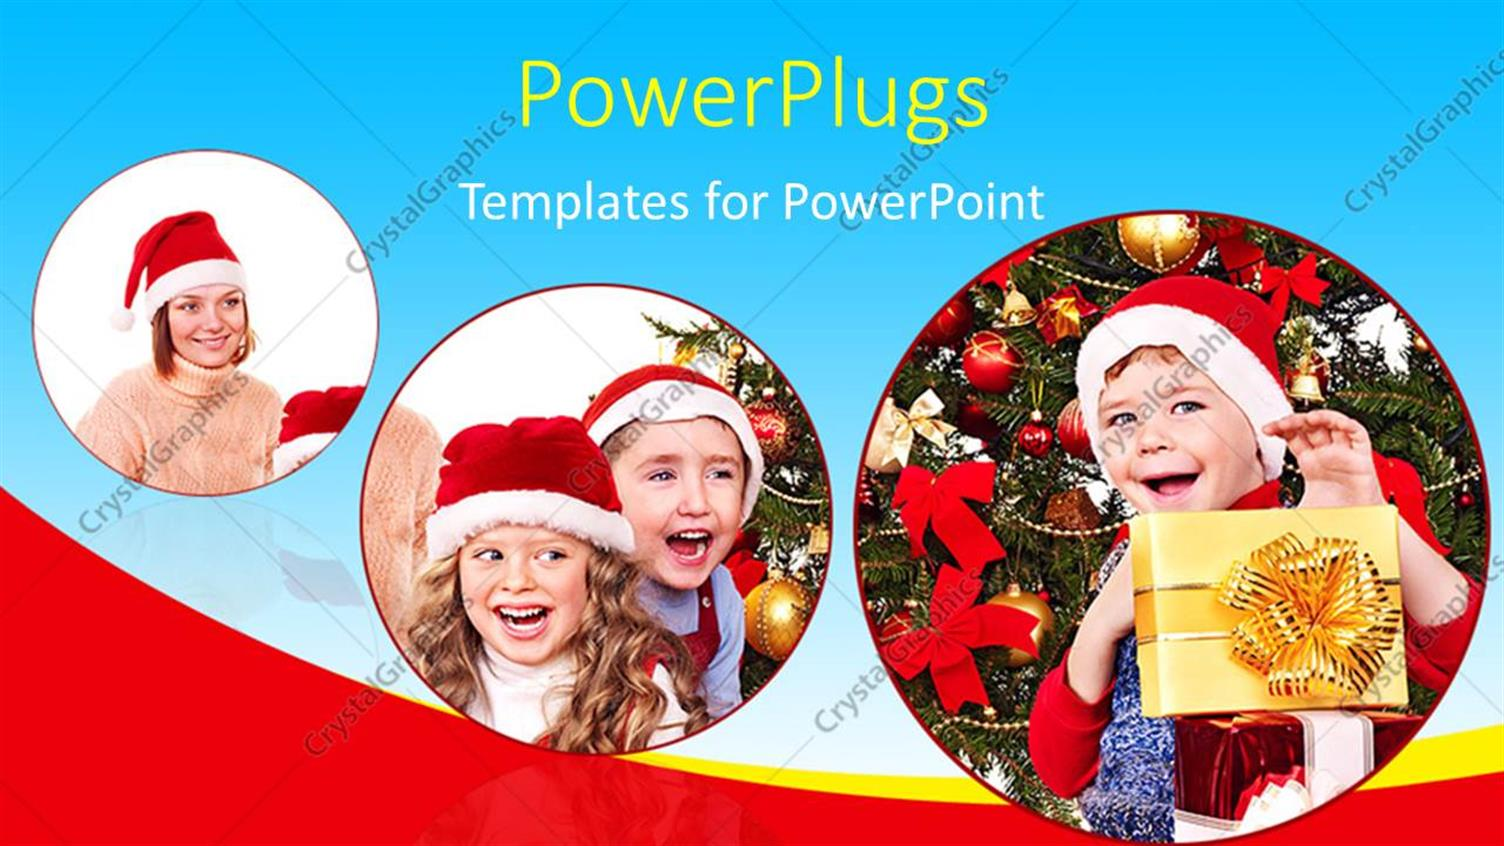 PowerPoint Template Displaying Three Tiles Showing Kids Wearing Christmas Caps Smiling Happily